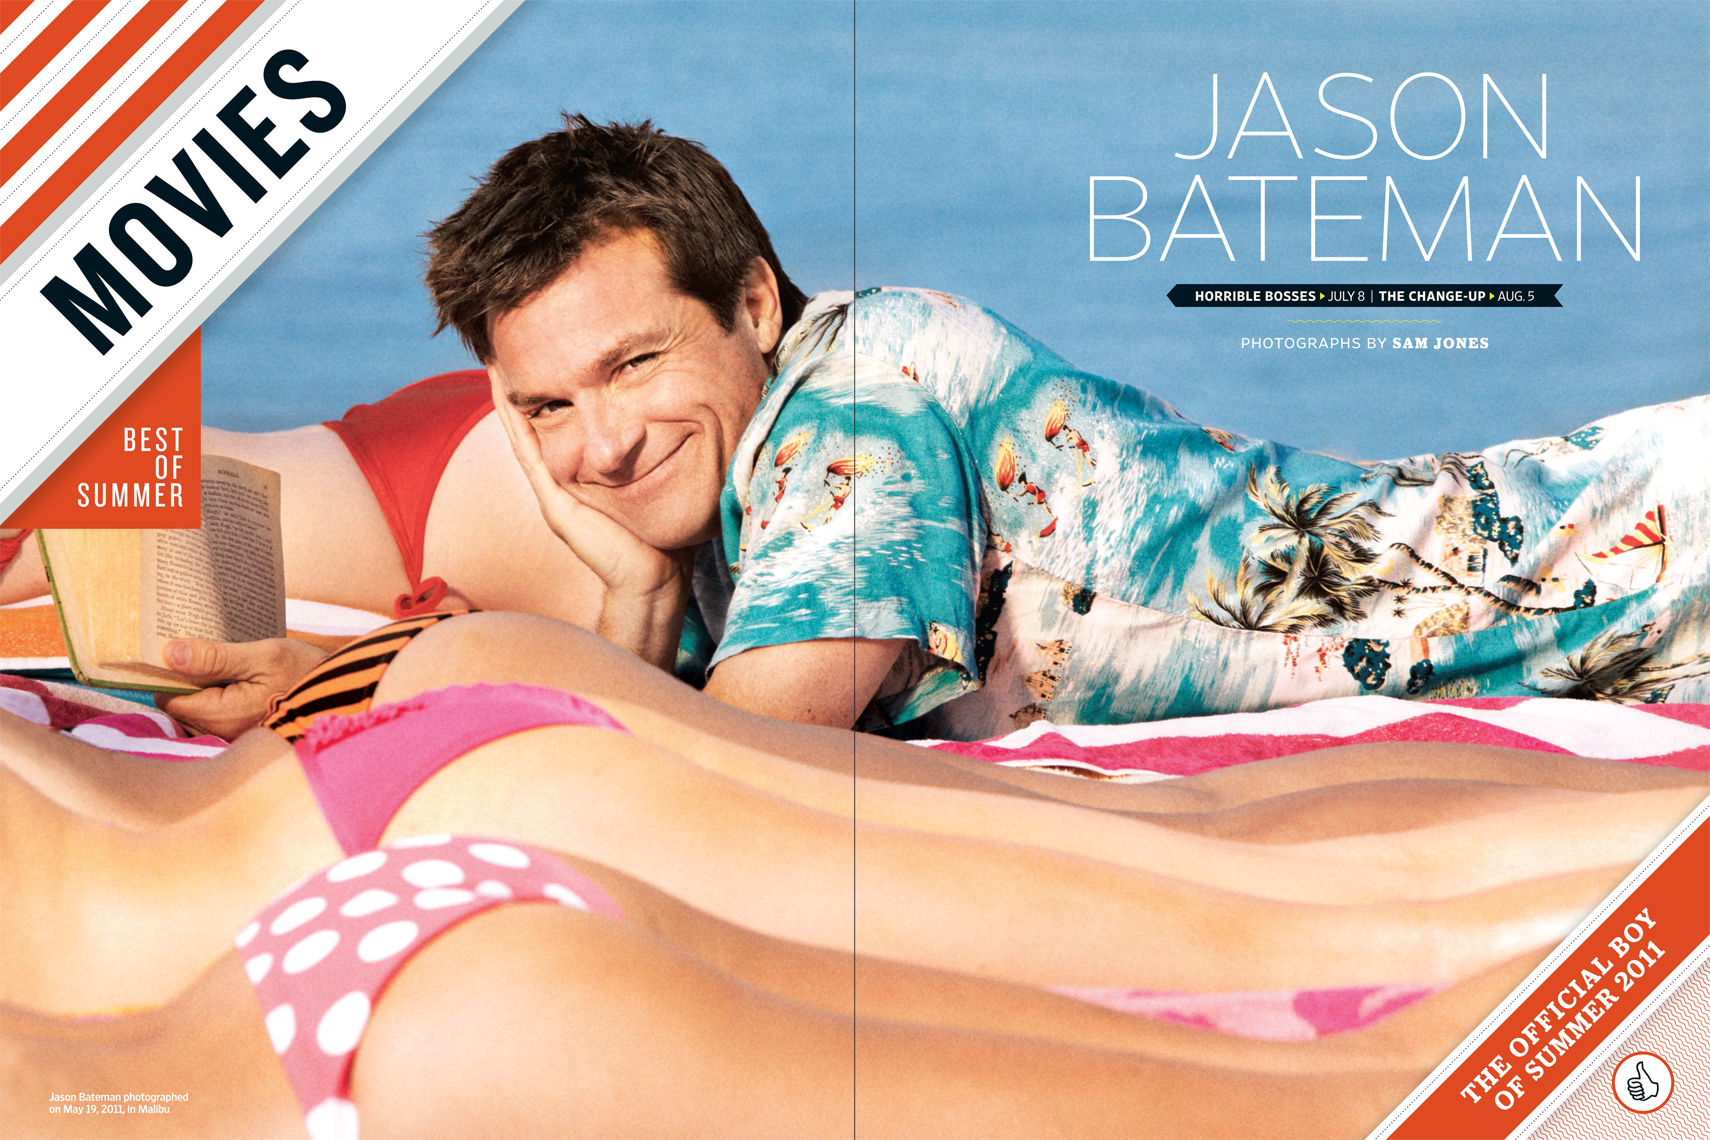 wJason_Bateman_Beach_Smiling_Spread